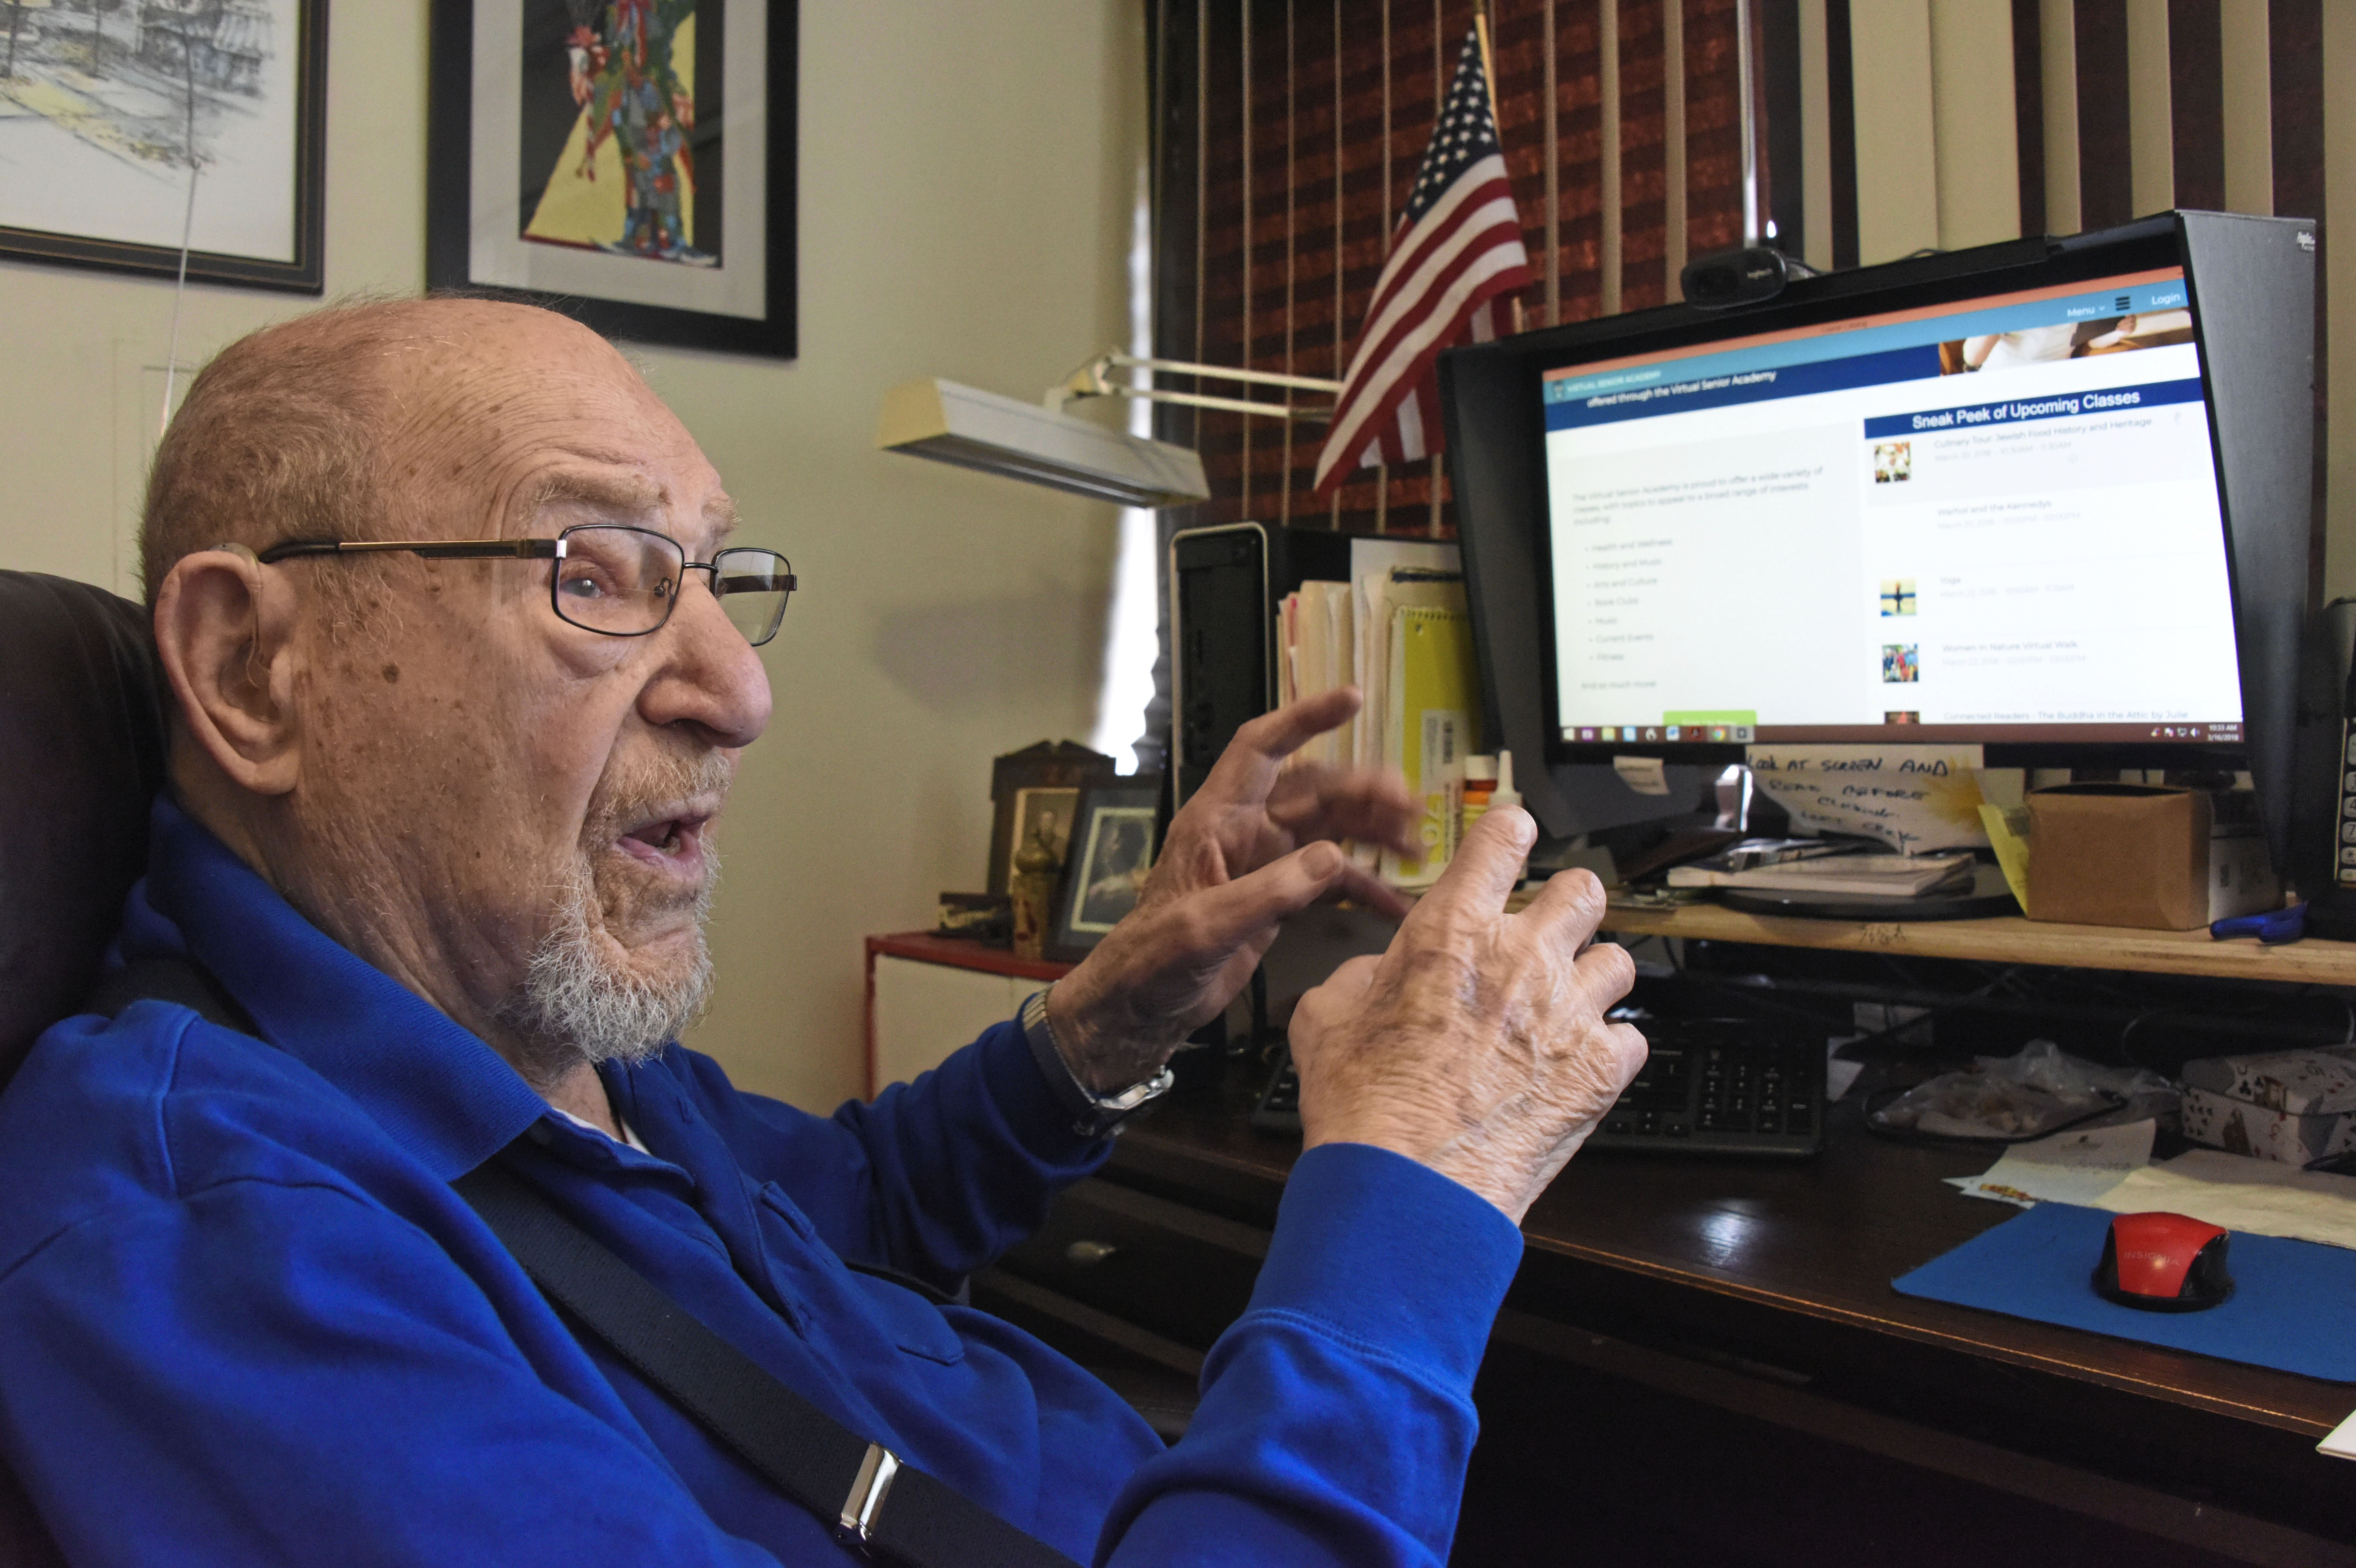 20180316dsSENIORACADEMY0319Local05-4 Al Fineman, 97, talks about his chatroom and using his computer in his living room at the Riverview Towers apartments in Squirrel Hill. He's part of the Jewish Healthcare Foundation-sponsored Virtual Senior Academy, using his home computer to take various online classes and interact with other seniors through the video conferencing.